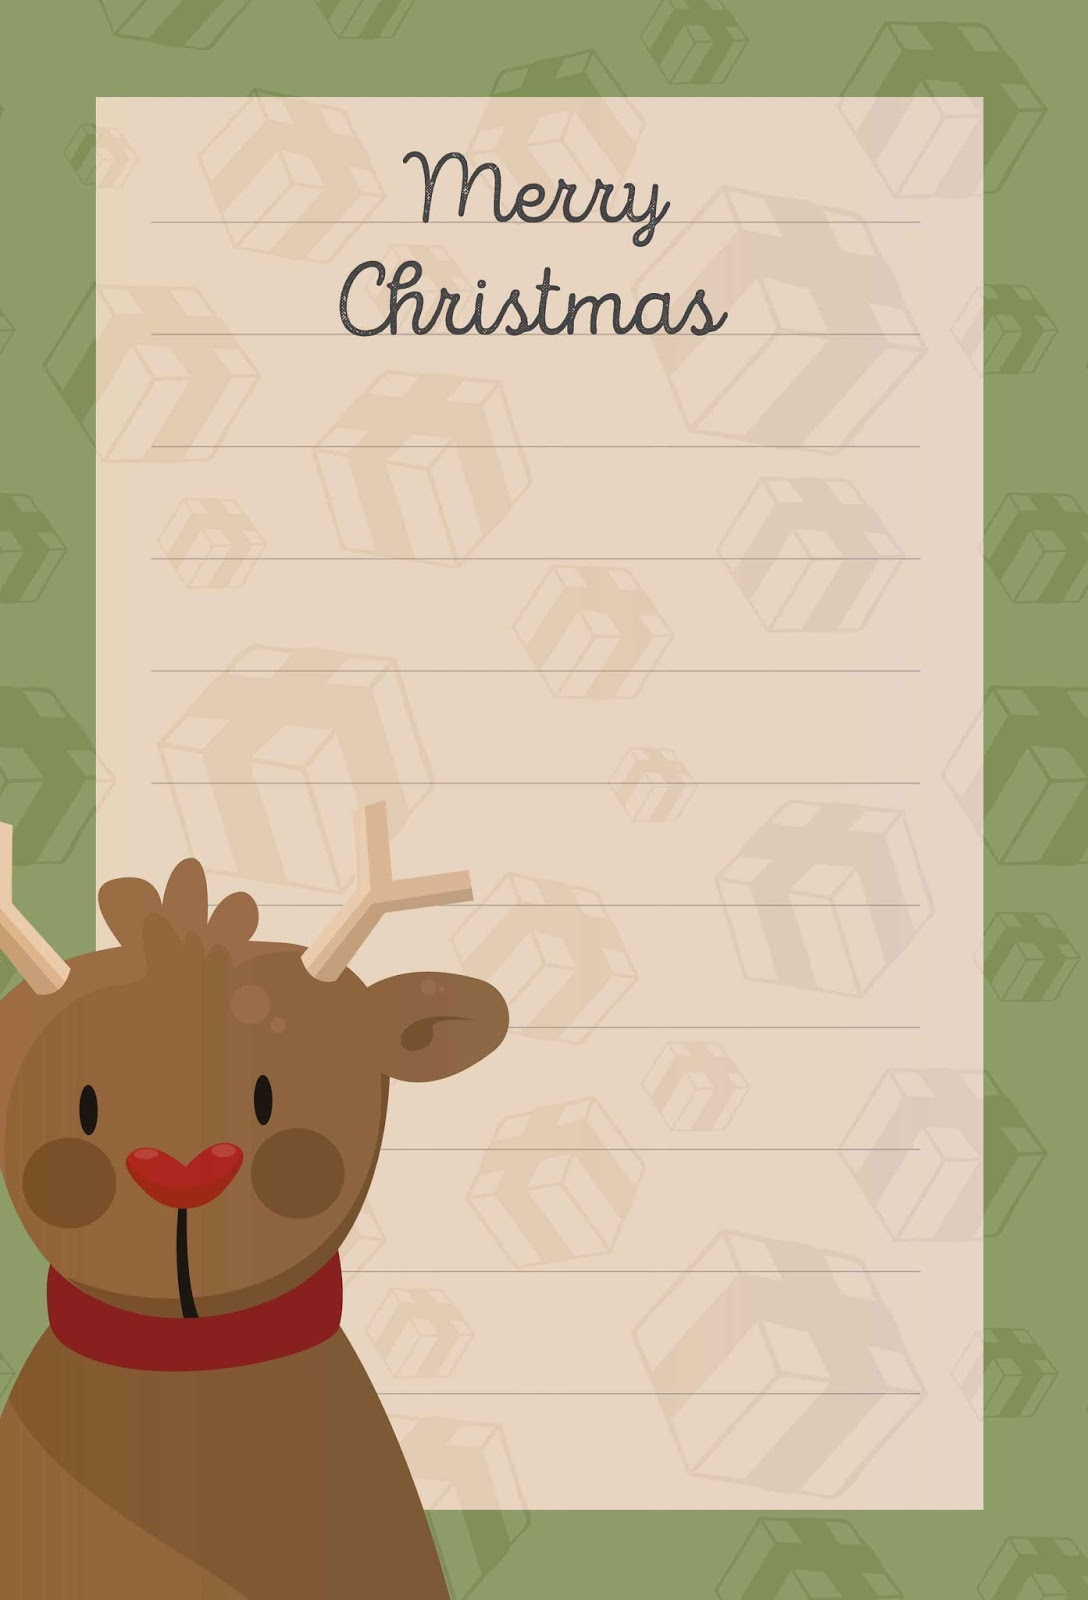 Free Christmas Photo Card Templates Download